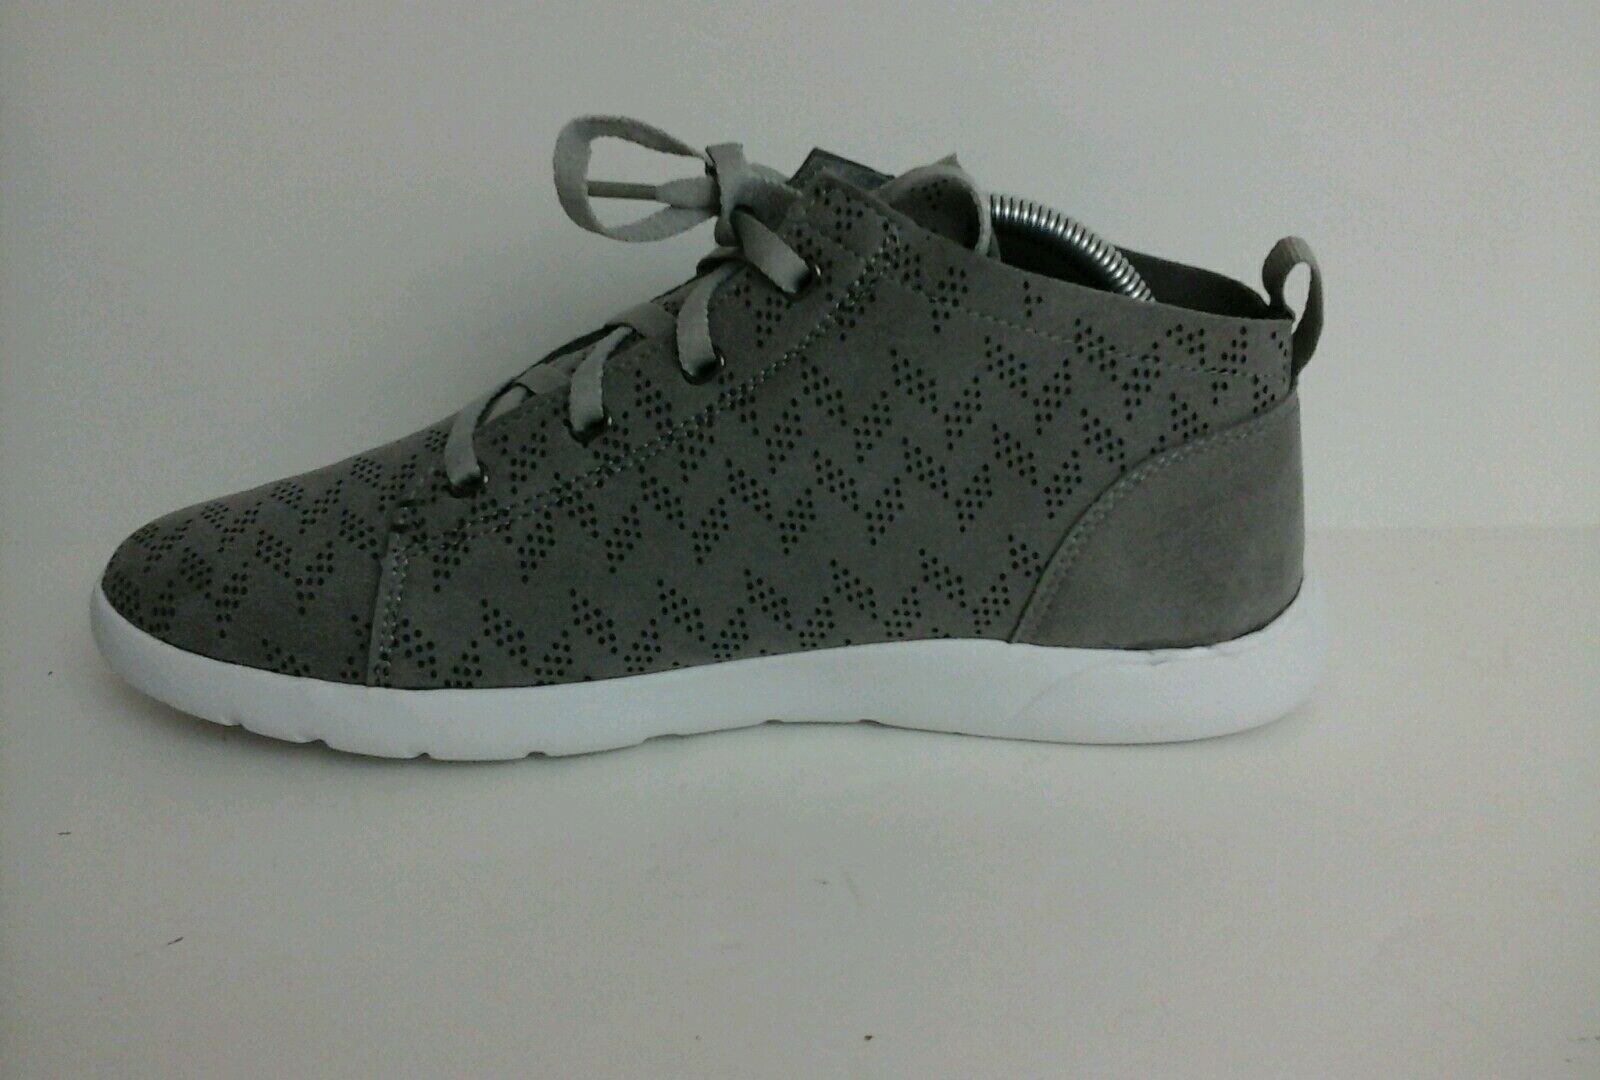 NWB Bearpaw Women's Gray Gracie High Top Sneakers size 9 70617-1 R2